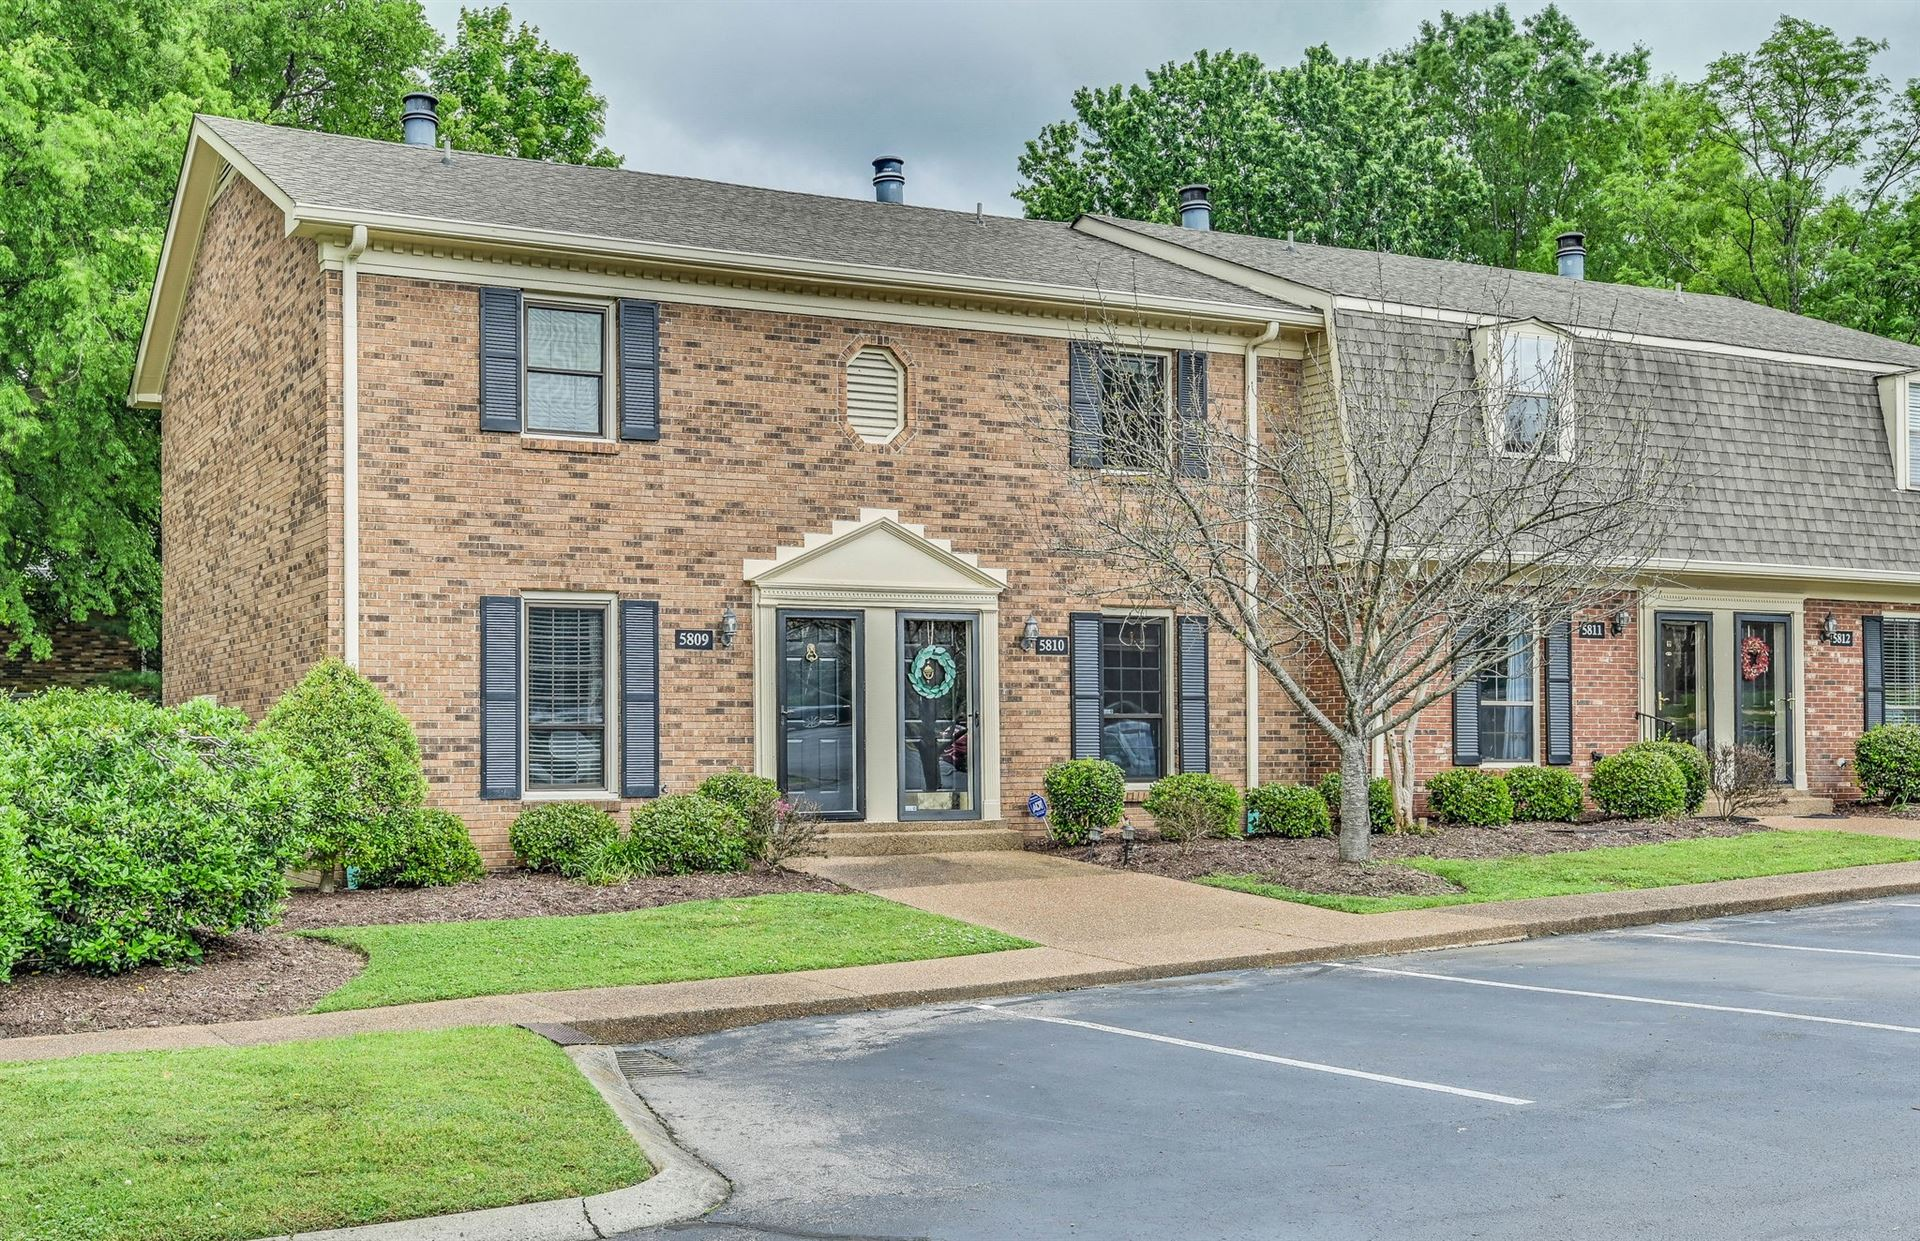 Photo of 5809 Brentwood Trace, Brentwood, TN 37027 (MLS # 2152505)